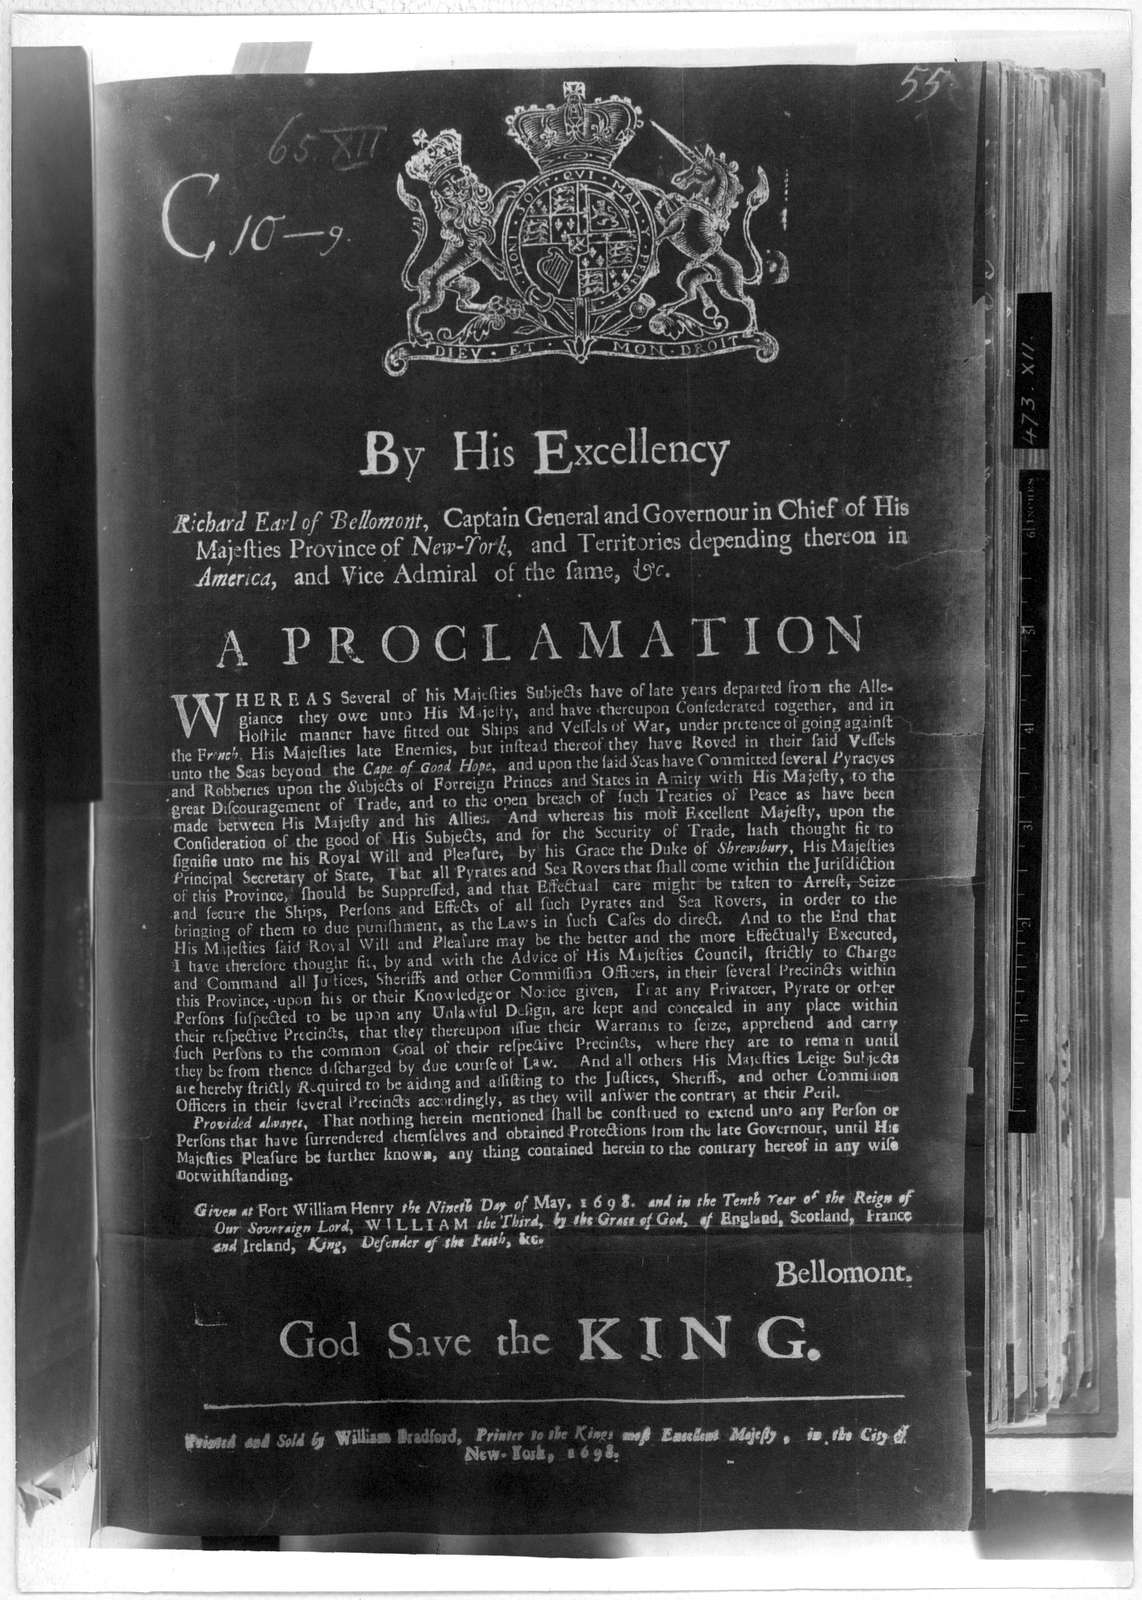 """By His Excellency Richard Earl of Bellomont Captain General and Governour in Chief of His Majesties Province of New York ... A proclamation [For the arrest of pyrates and sea rovers."""" Given at Fort William Henry the ninth day of may, 1698 ... Be"""